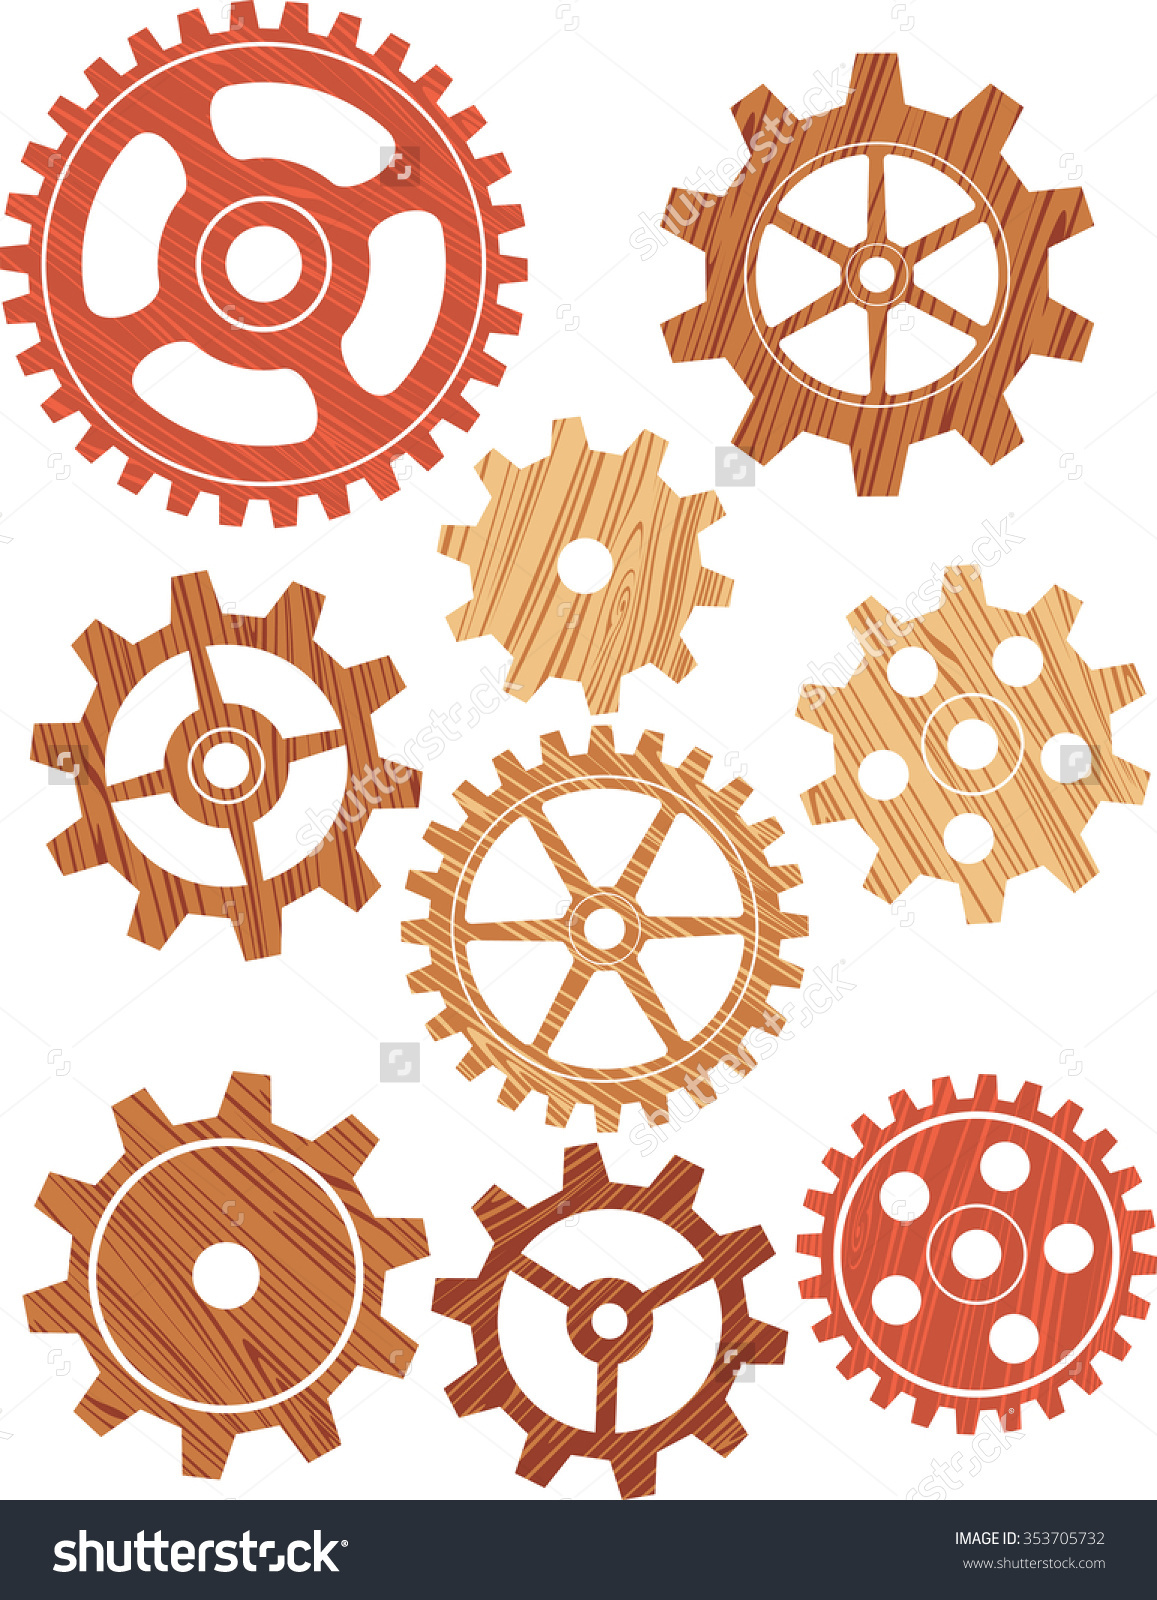 Wooden Cogsvintage Style Wood Gears Different Stock Vector.